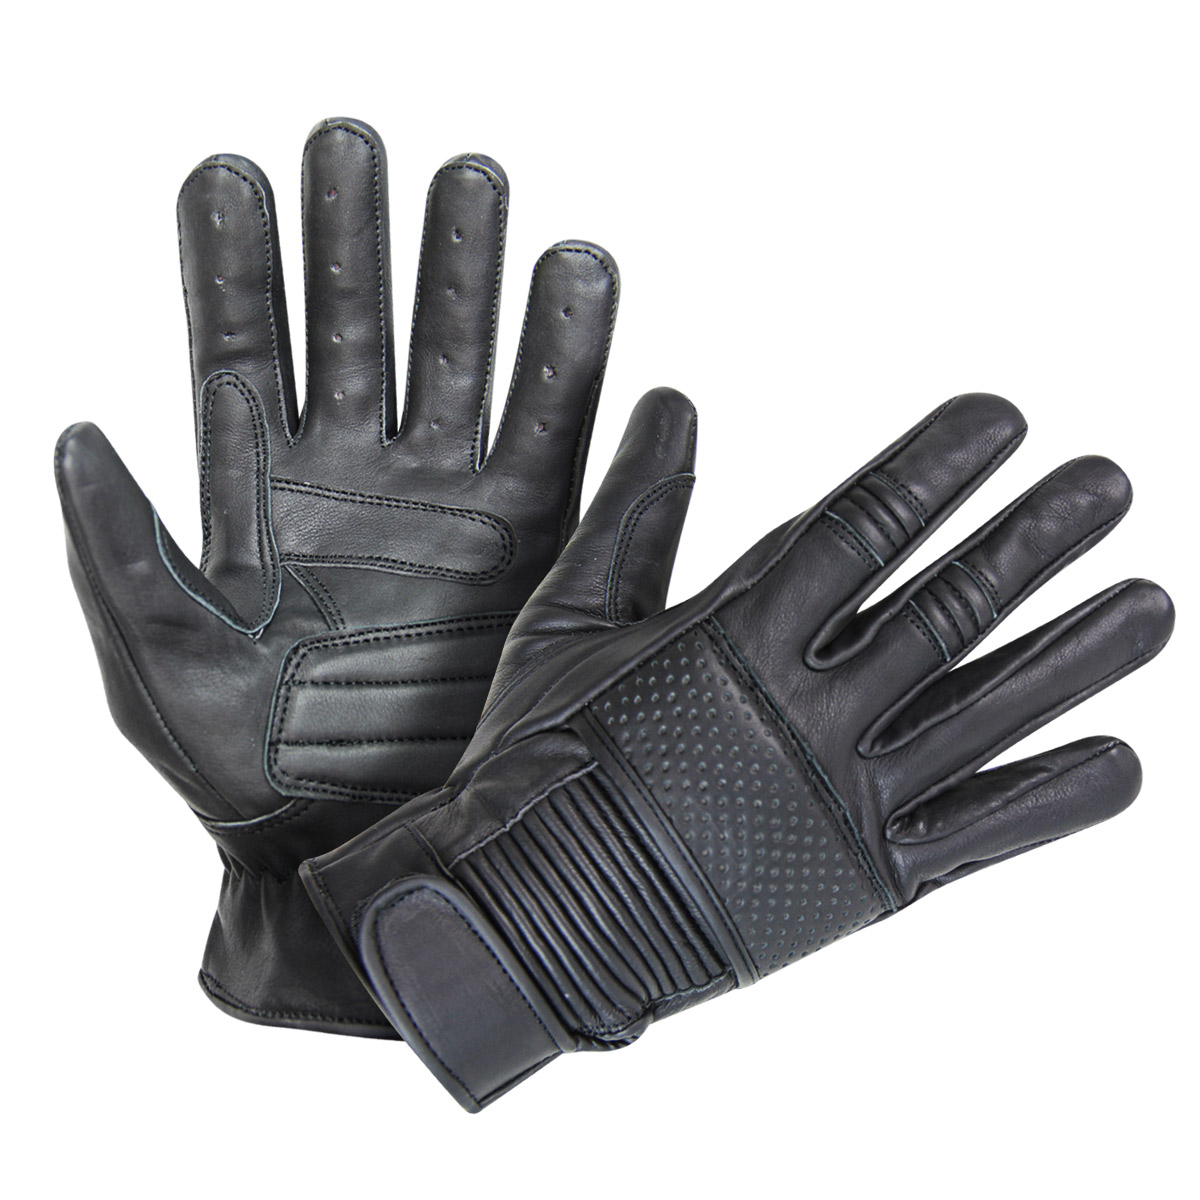 Xelement UK2650 Mens Black Leather Riding Gloves